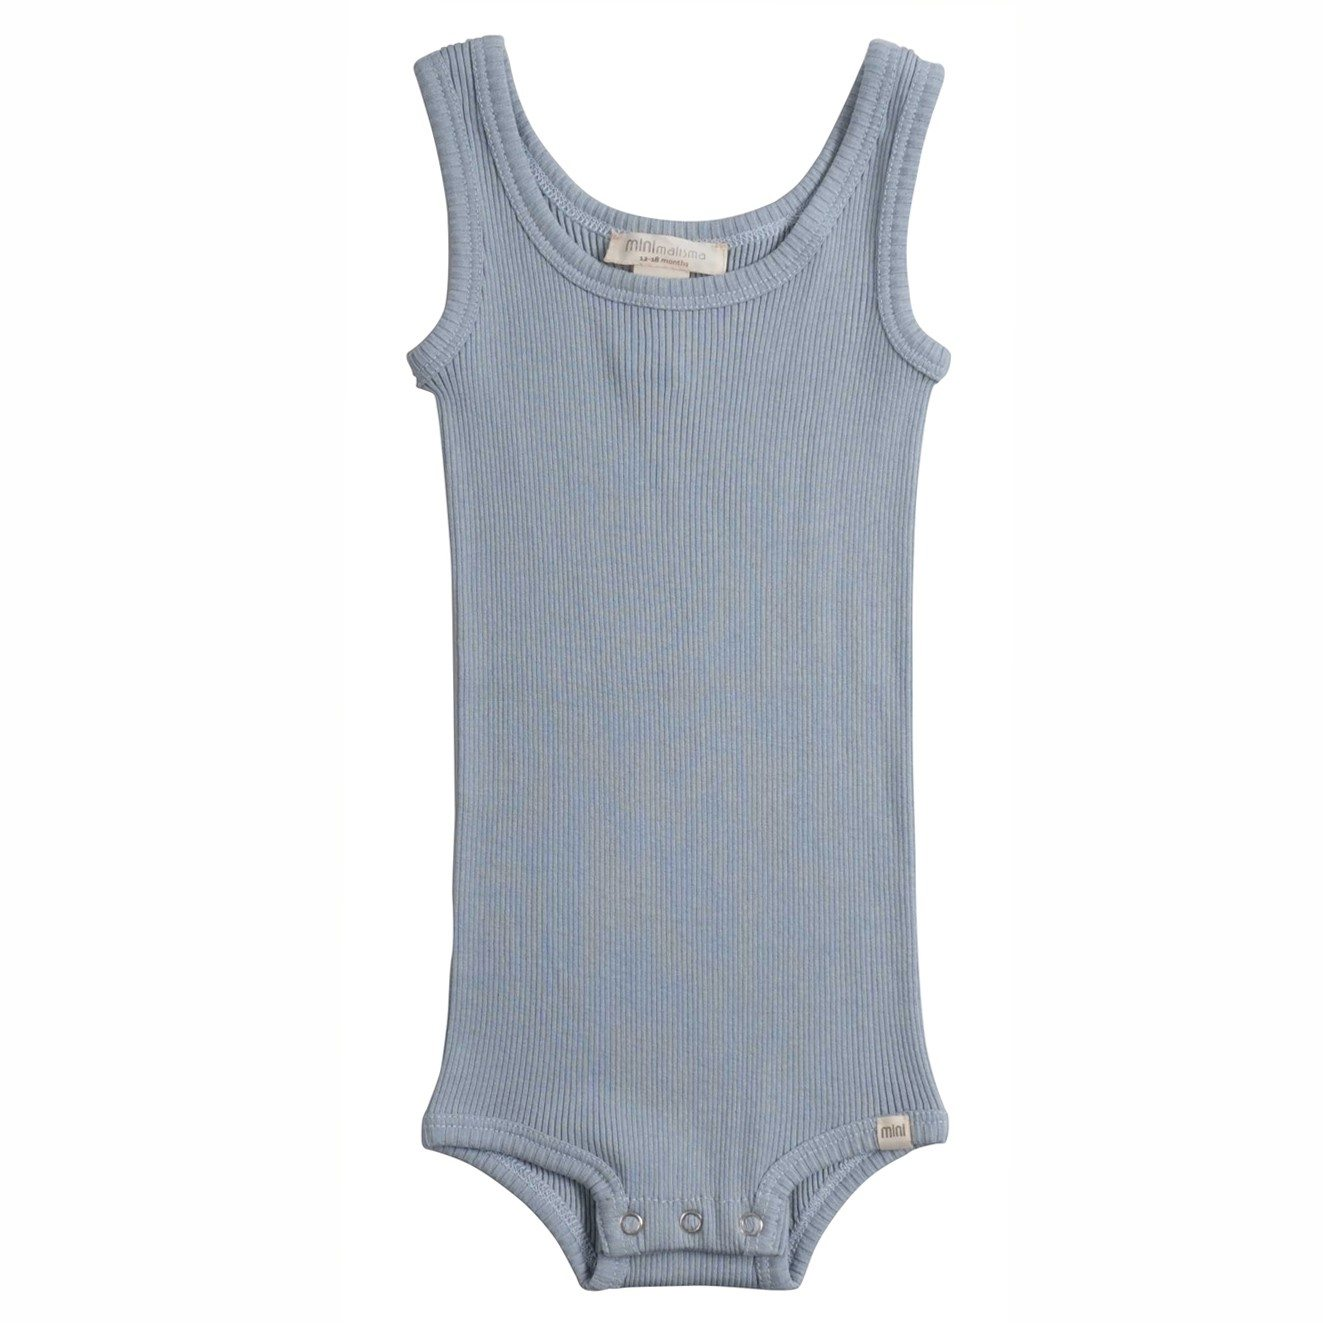 Tank-top body bornholm - fog blue